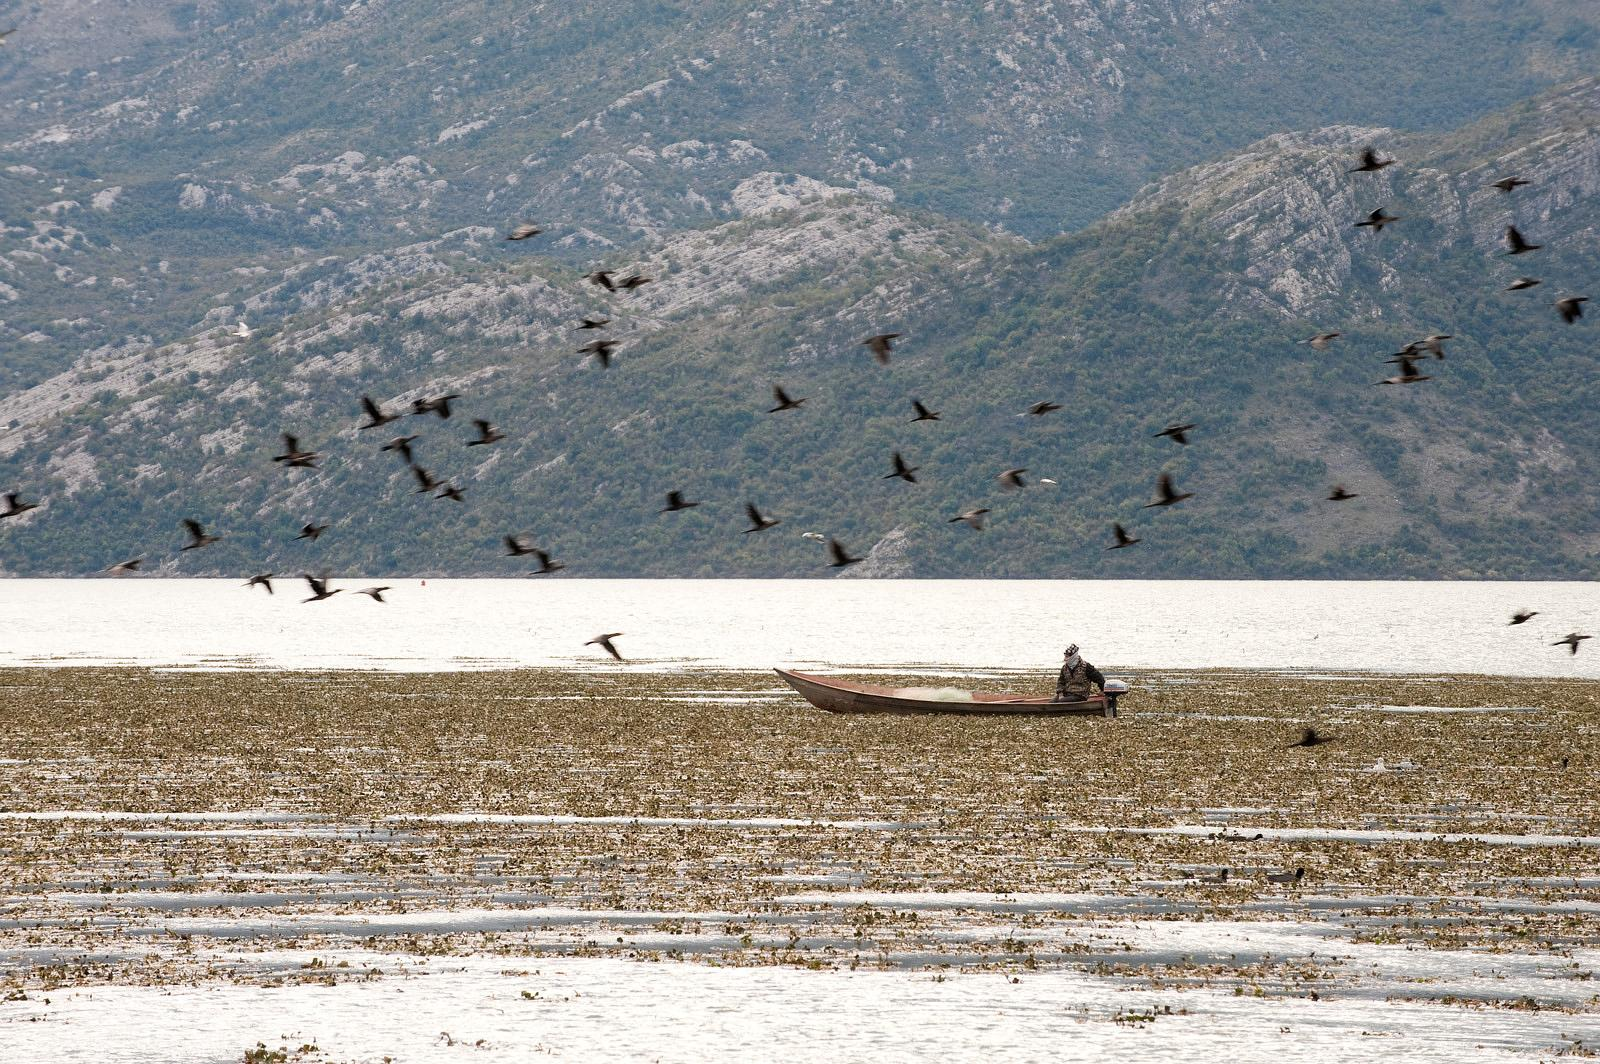 Pygmy cormorants and fishing boast, Lake Skadar National Park, Montenegro